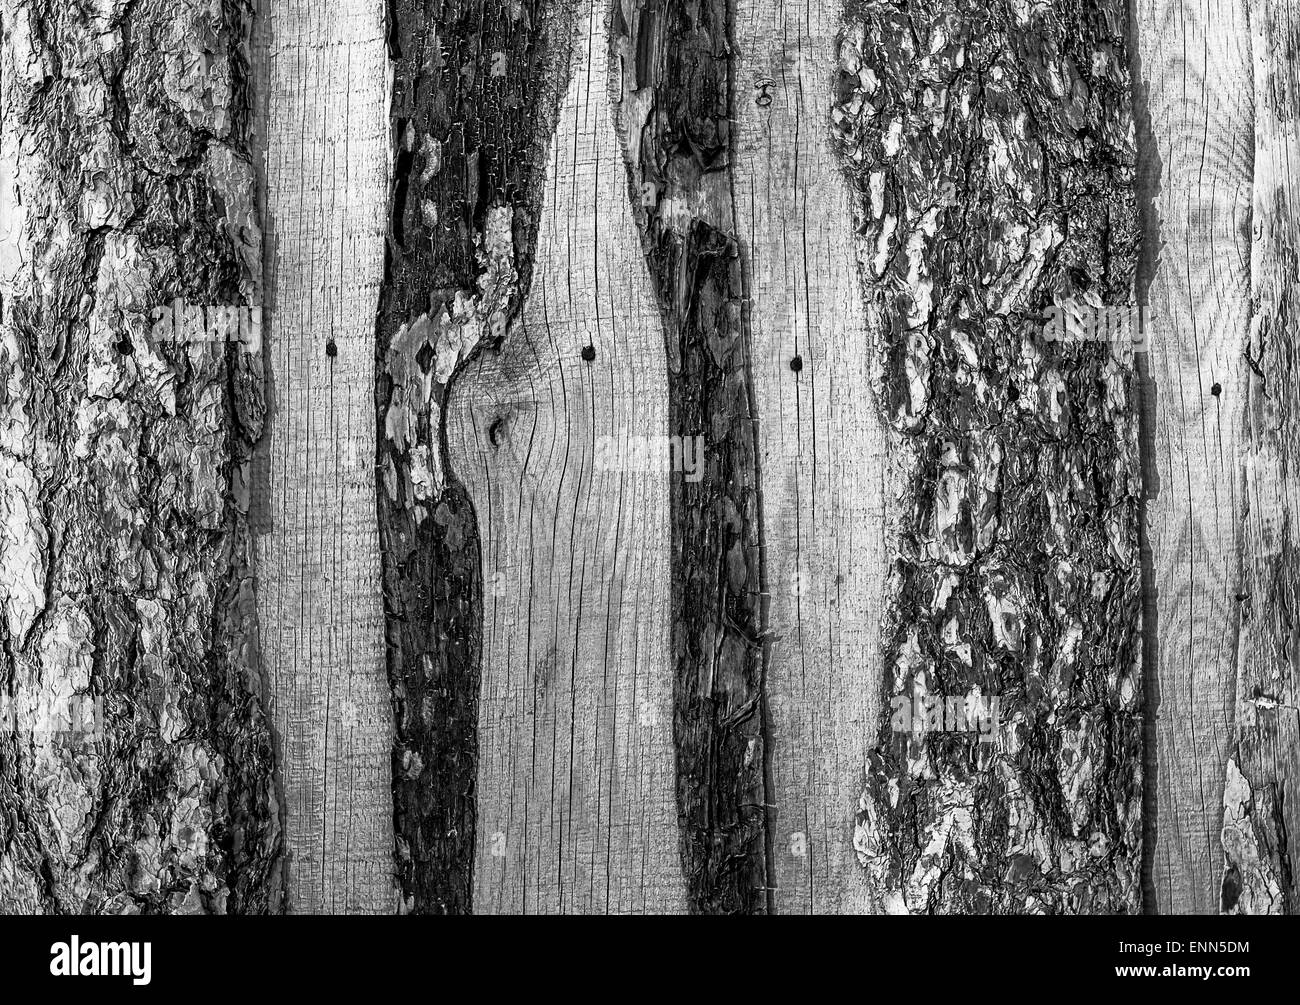 Wooden planks form a rustic fence with nail marks in black and white - Stock Image